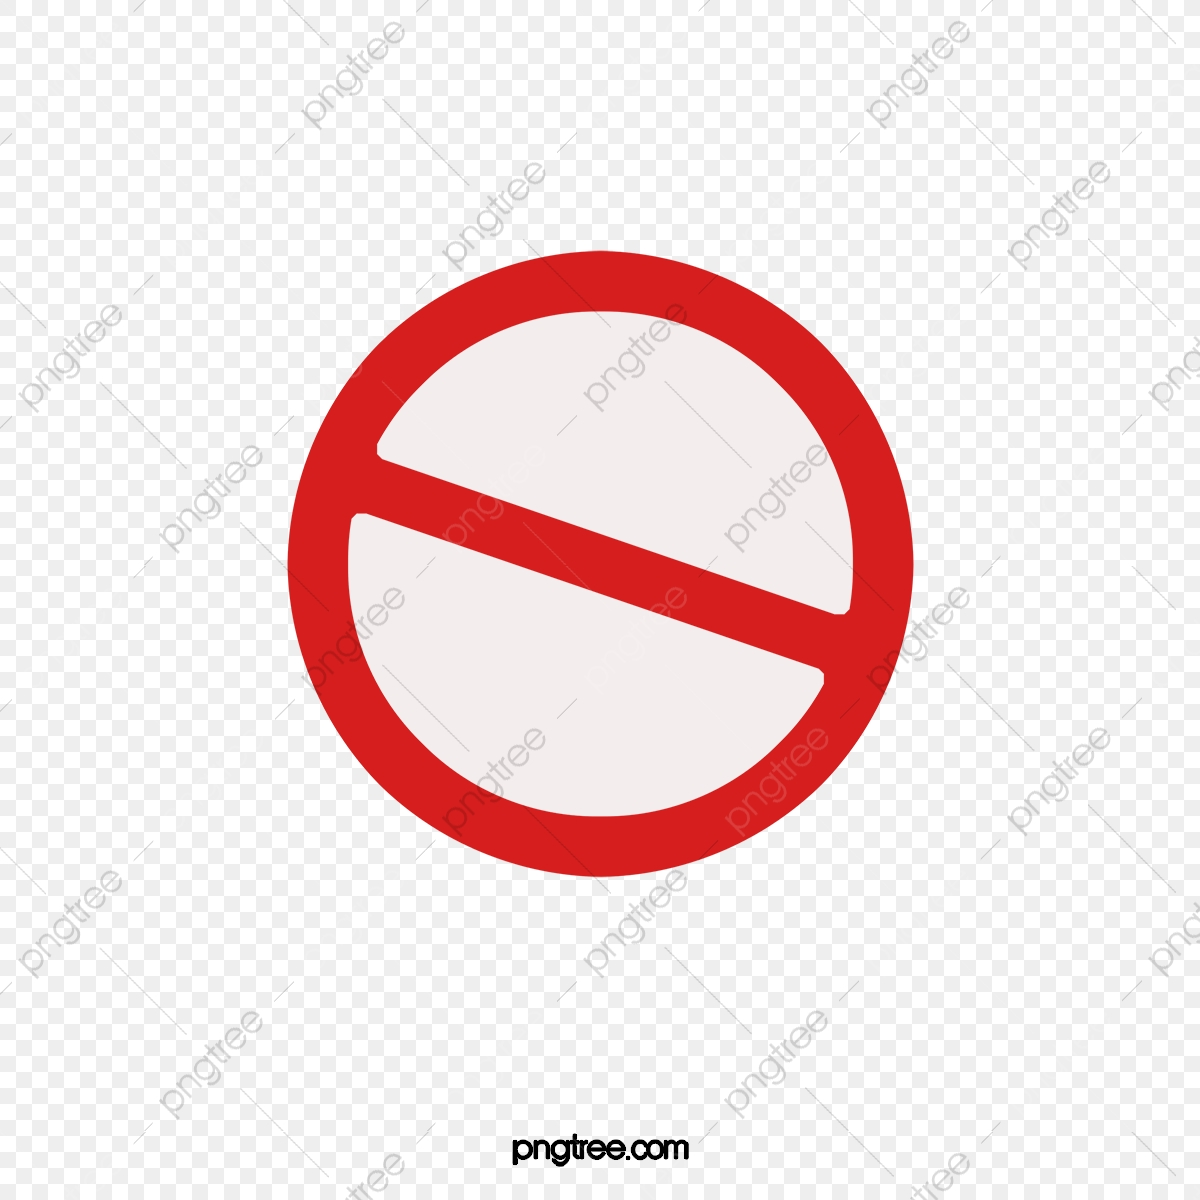 Red Logo Ban, Logo Clipart, Mark, Red PNG Transparent Clipart Image.